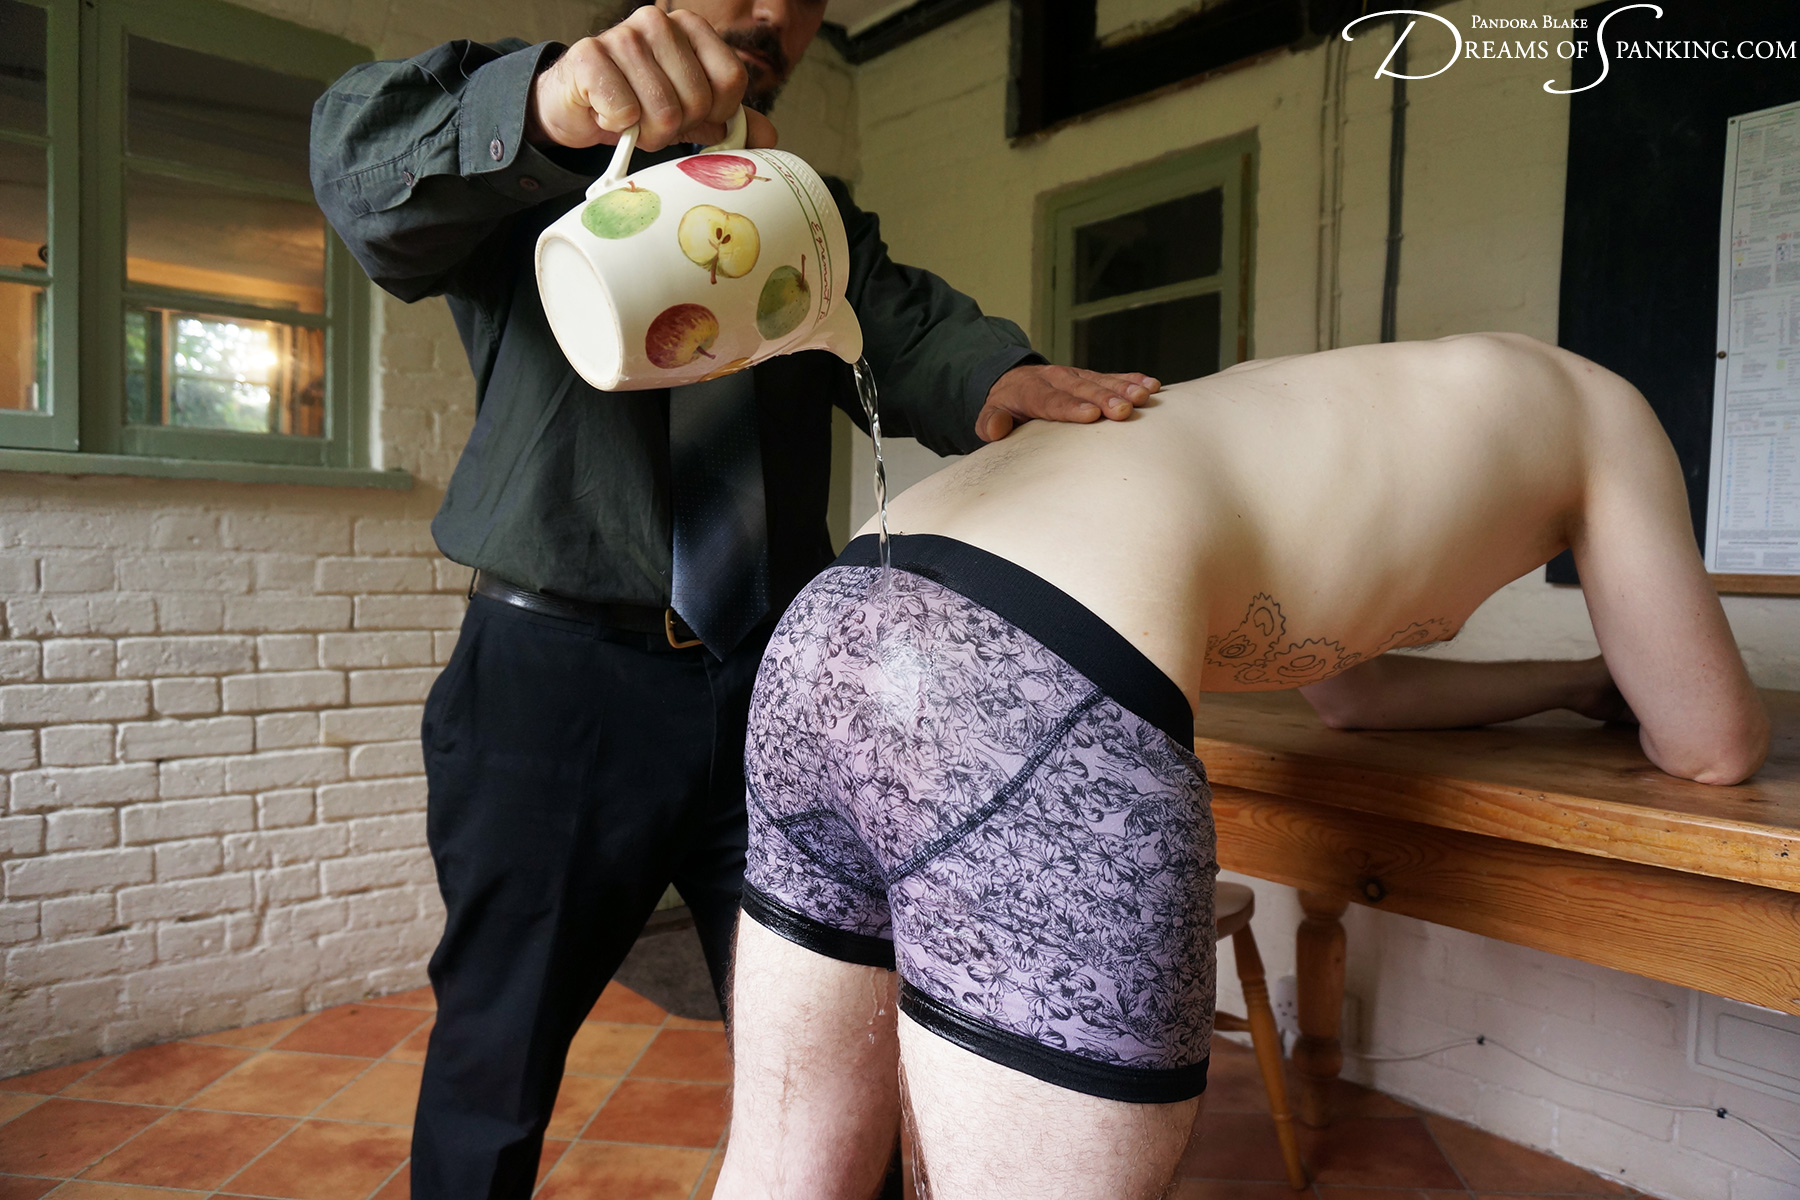 Hot,she splendid Spank for pleasure demo